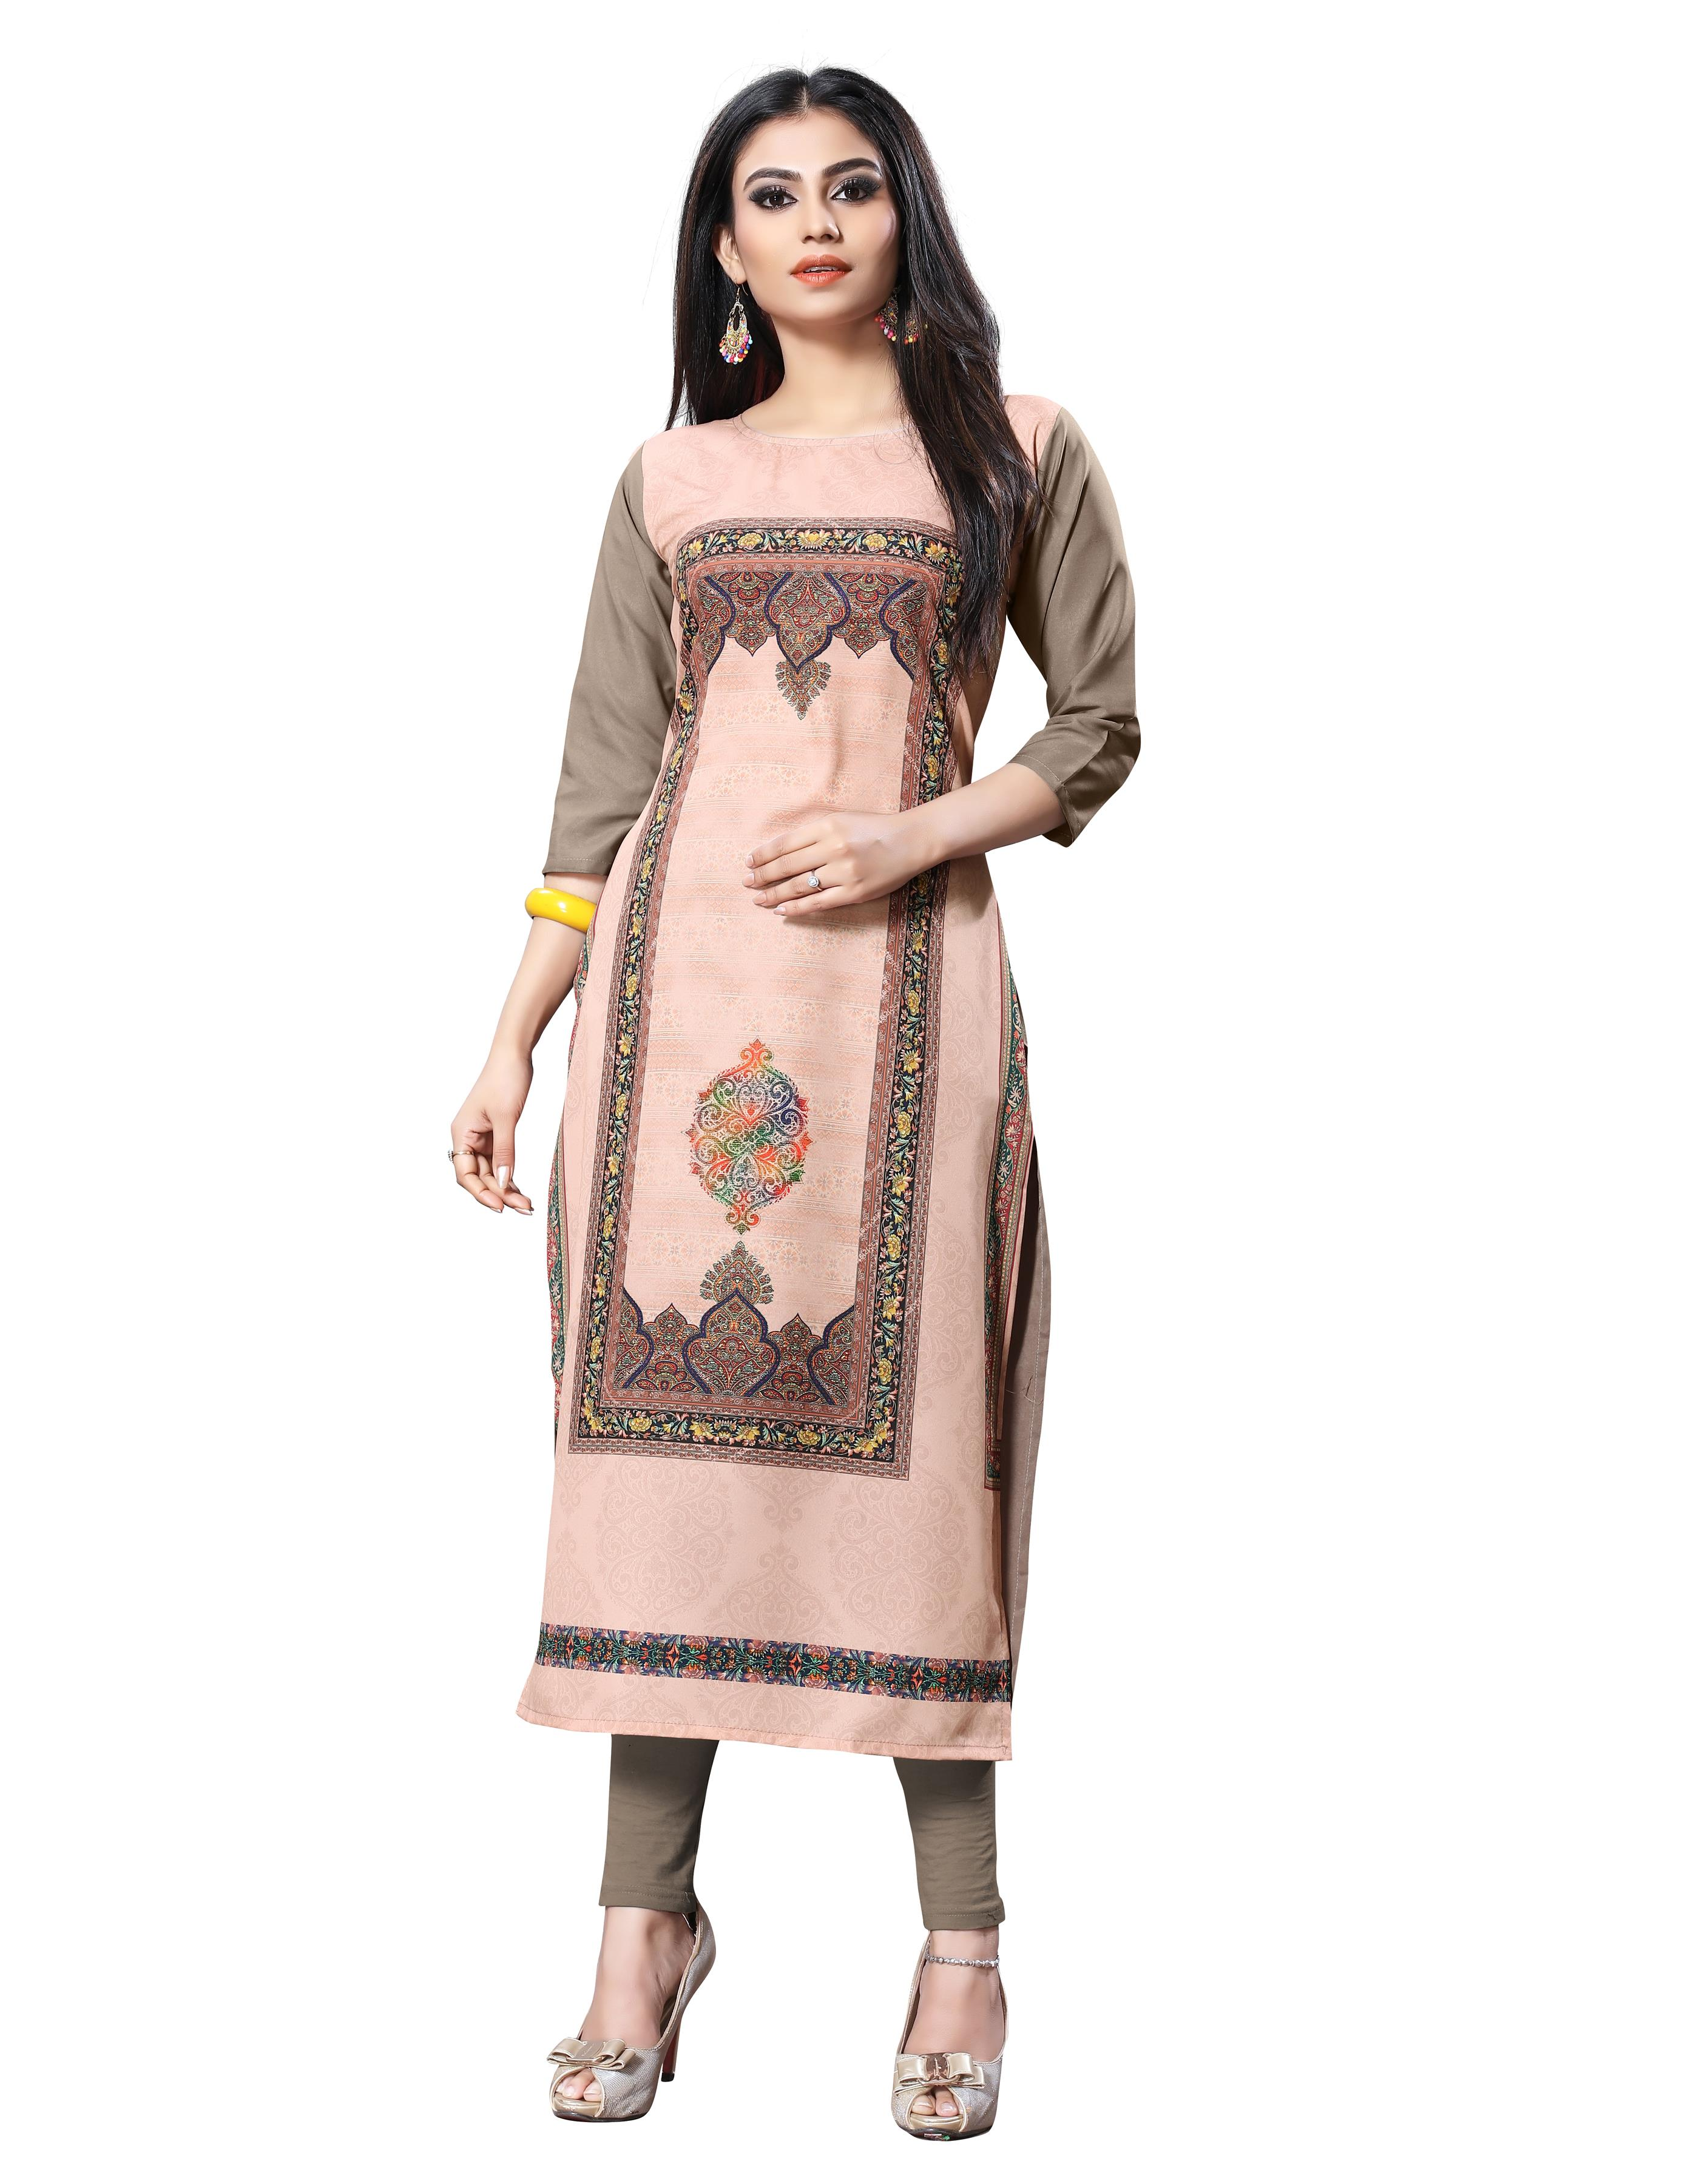 American Causal Designer Antique White Kurti